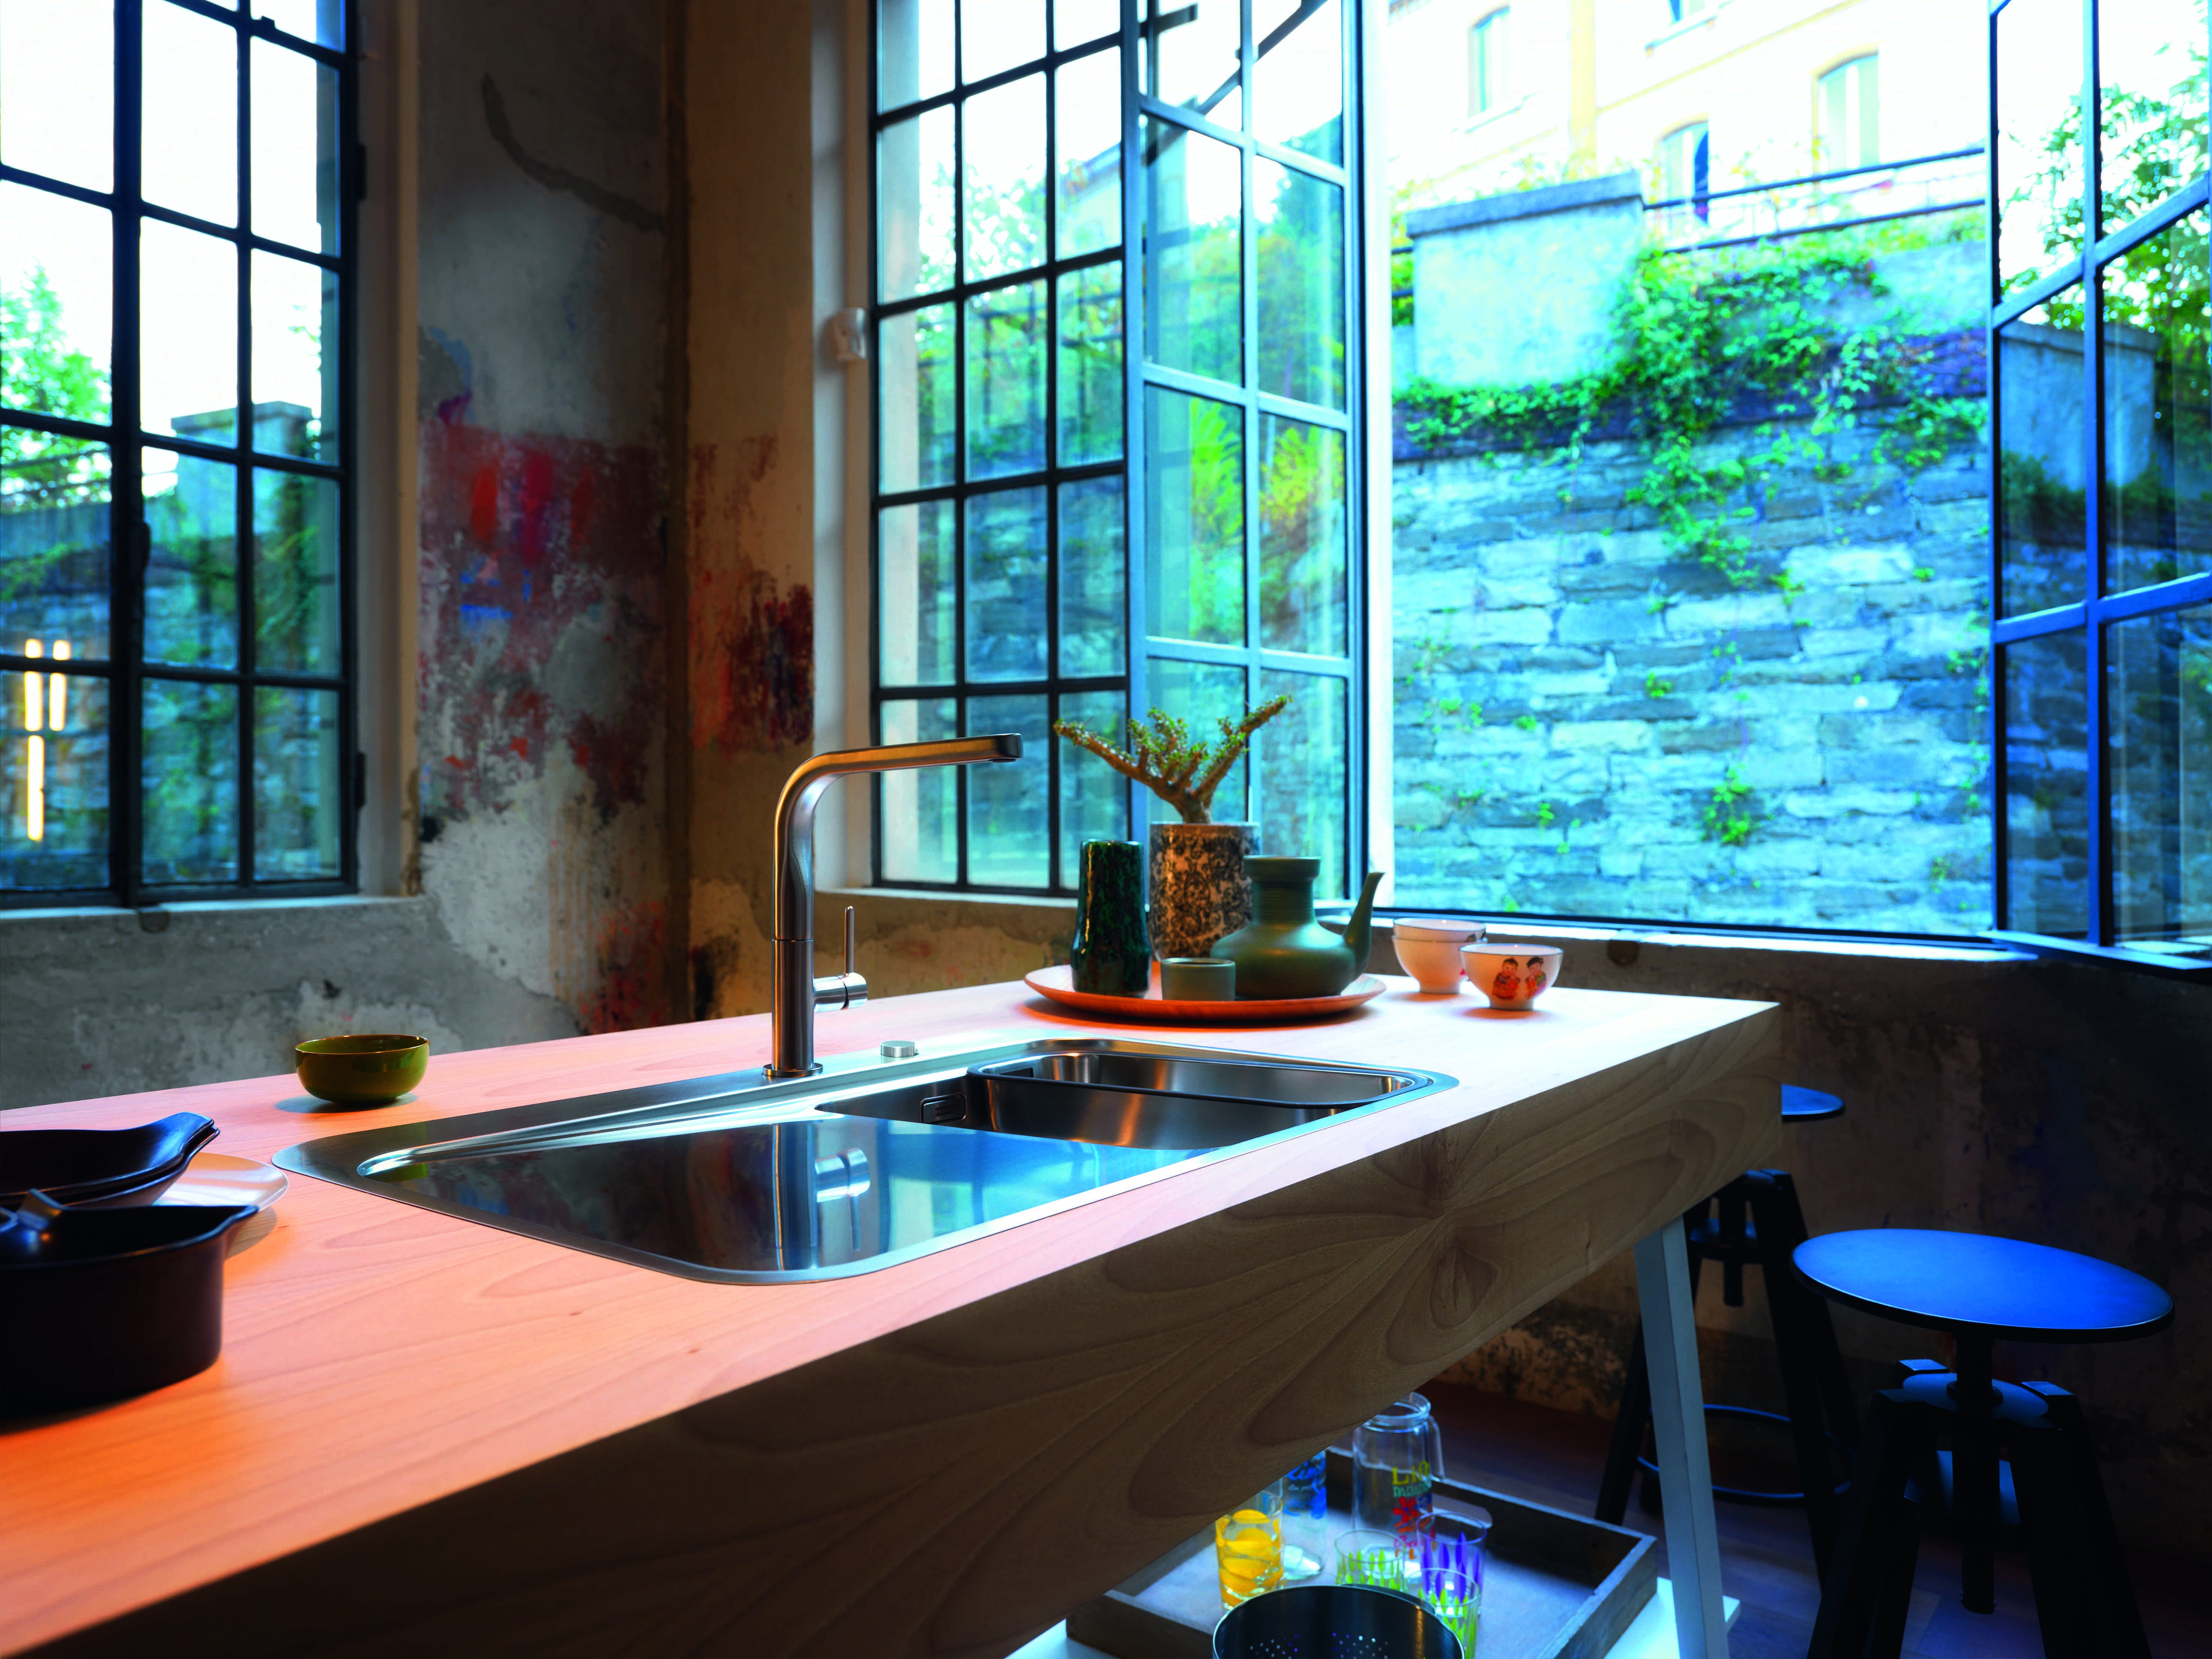 Decorex showcases changing role of kitchen in the home - Leading ...